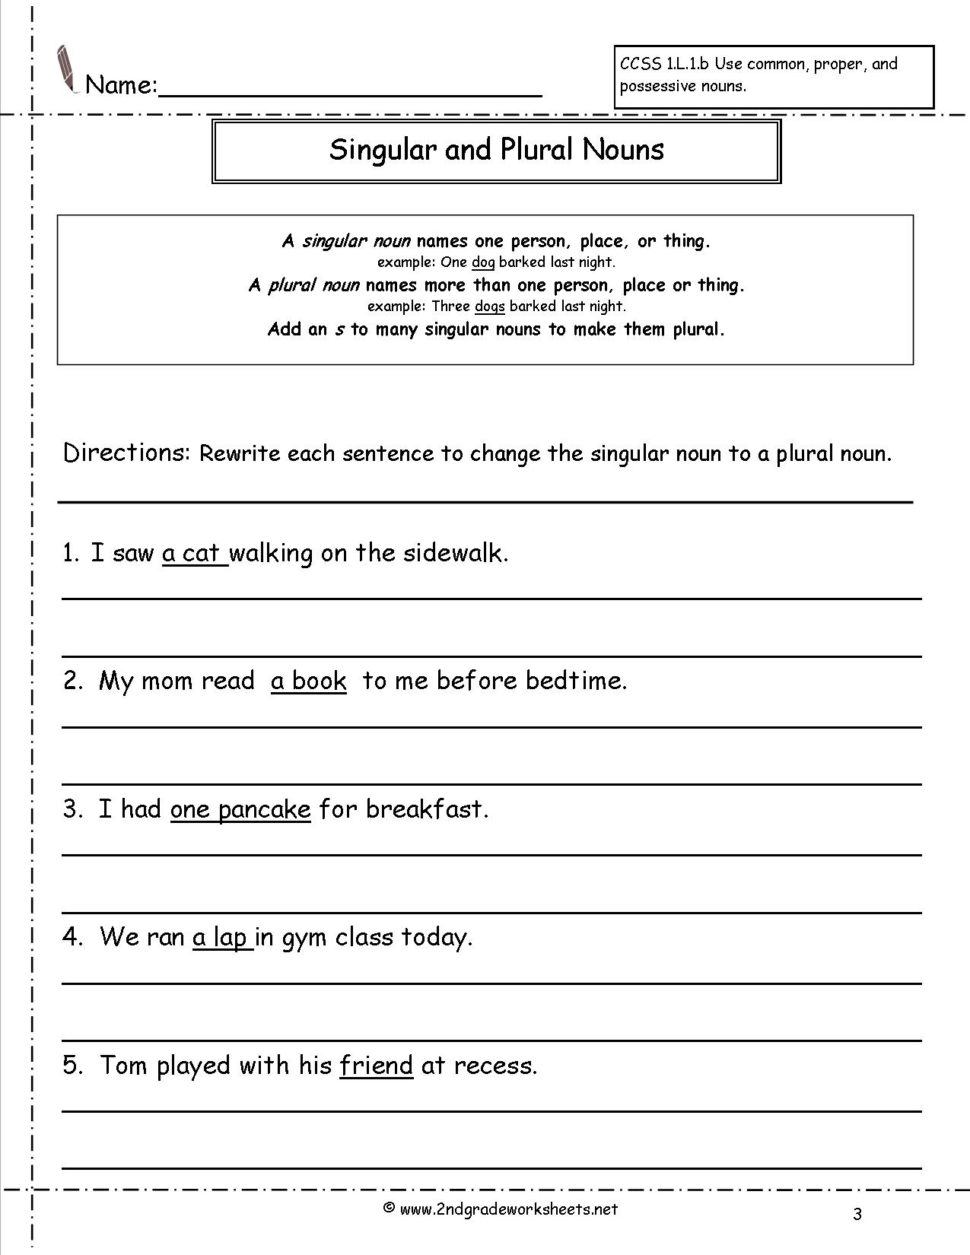 Worksheet   Concrete Words Noun Worksheets Pdf With Answers